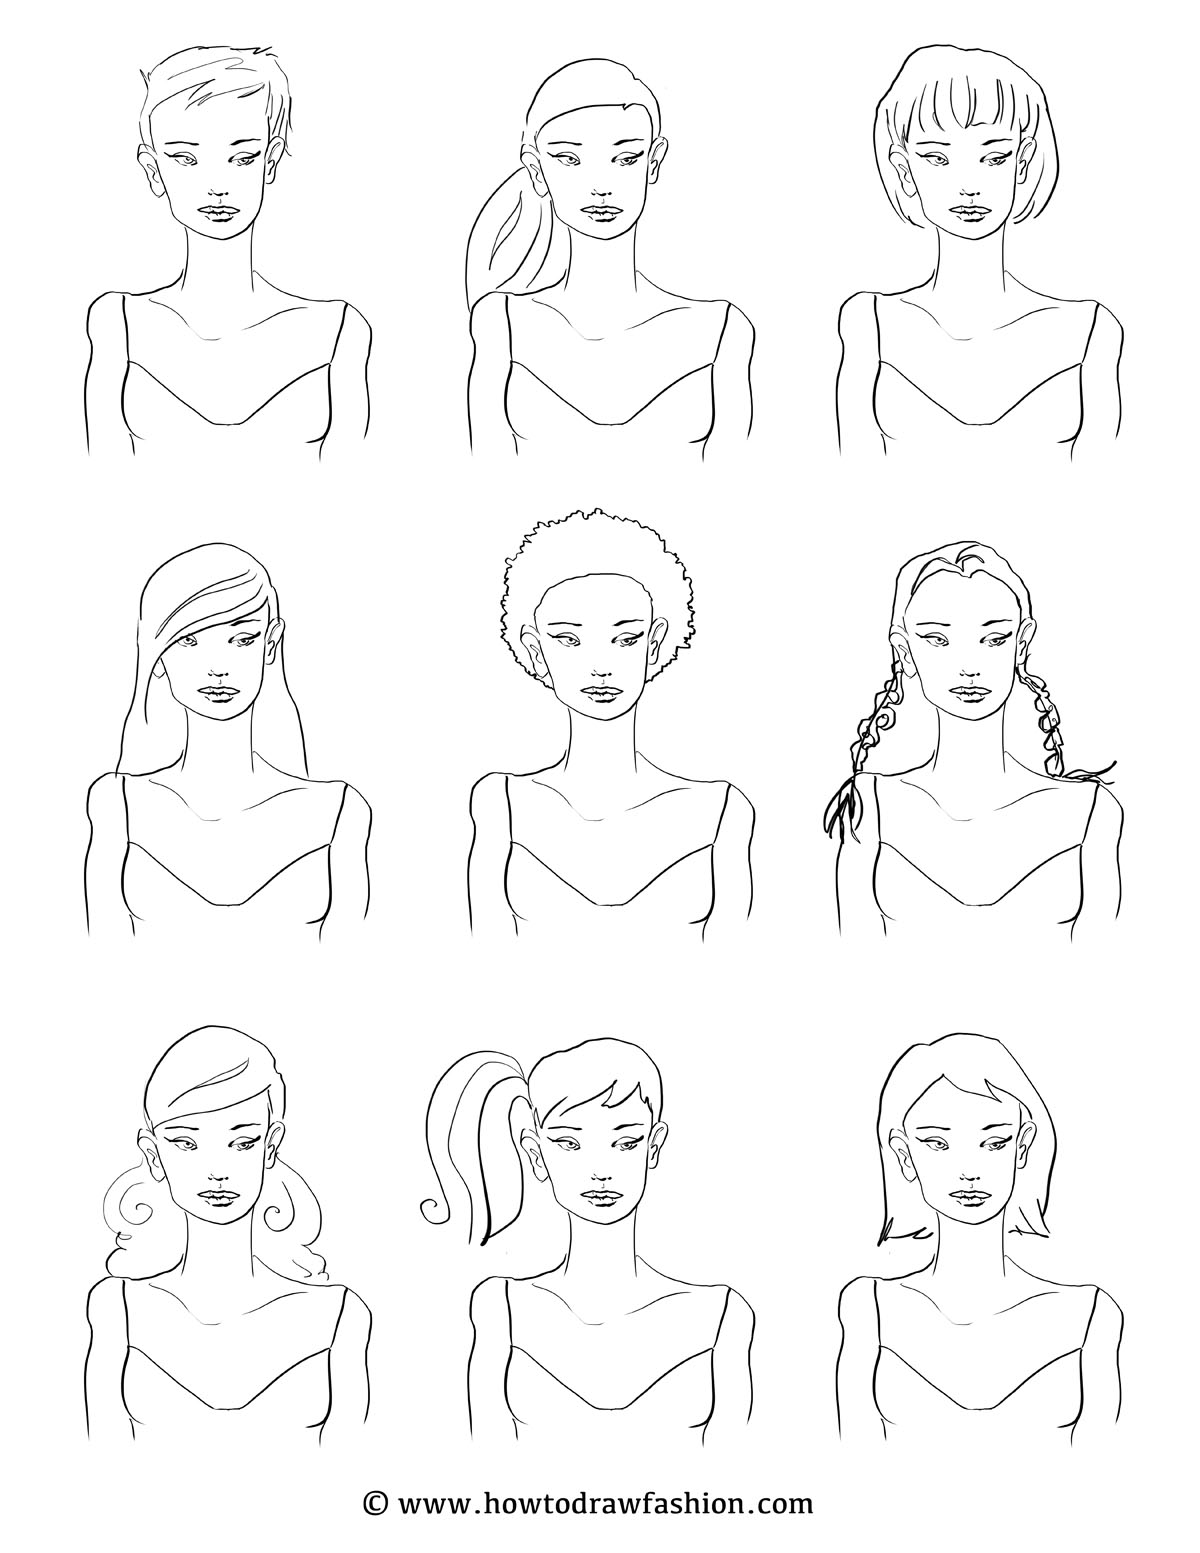 How To Draw Fashion One Model Nine Styles